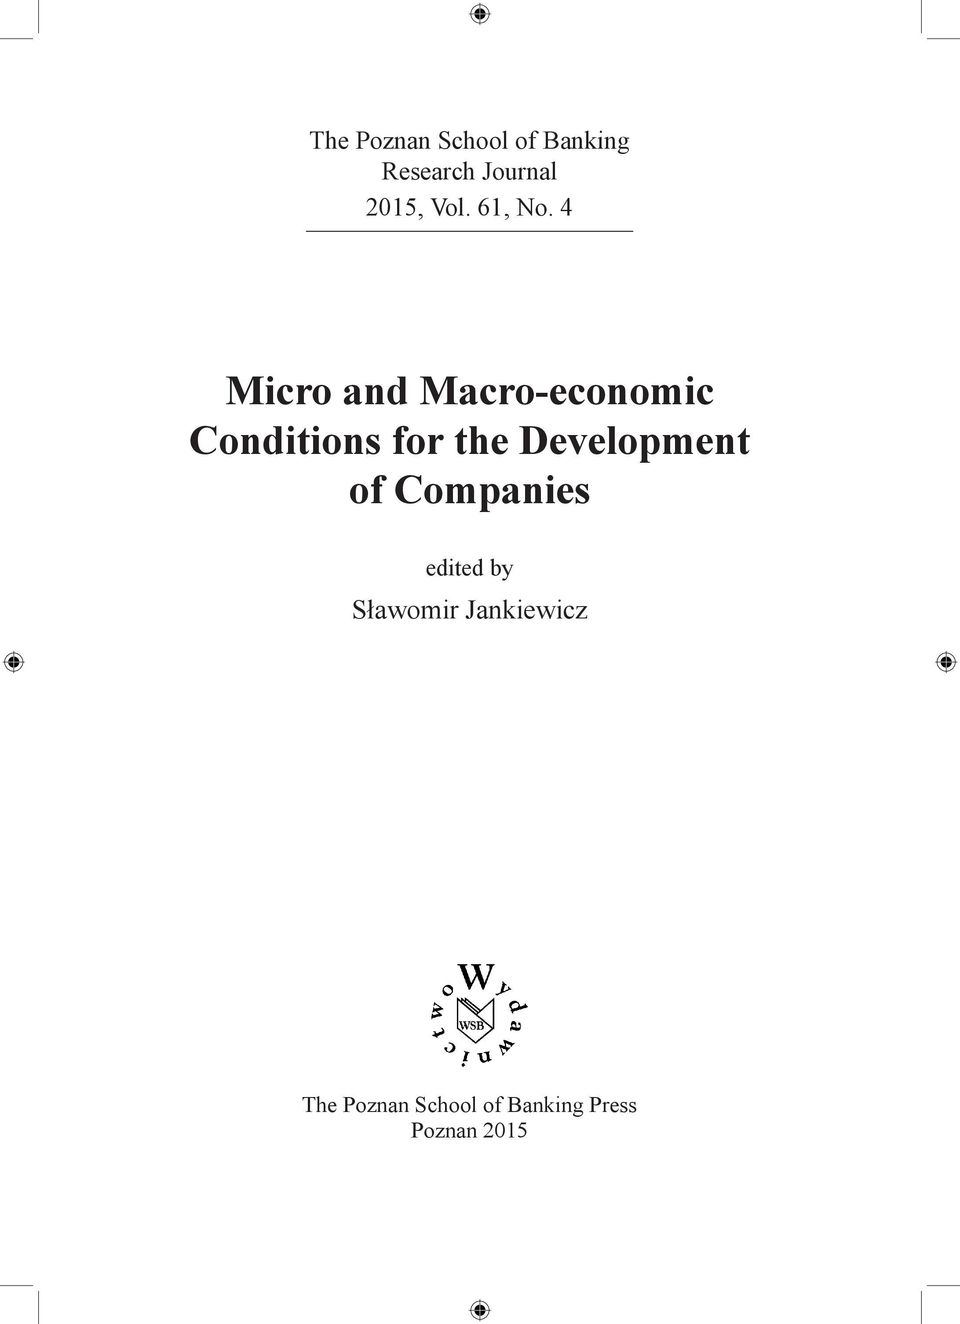 4 Micro and Macro-economic Conditions for the